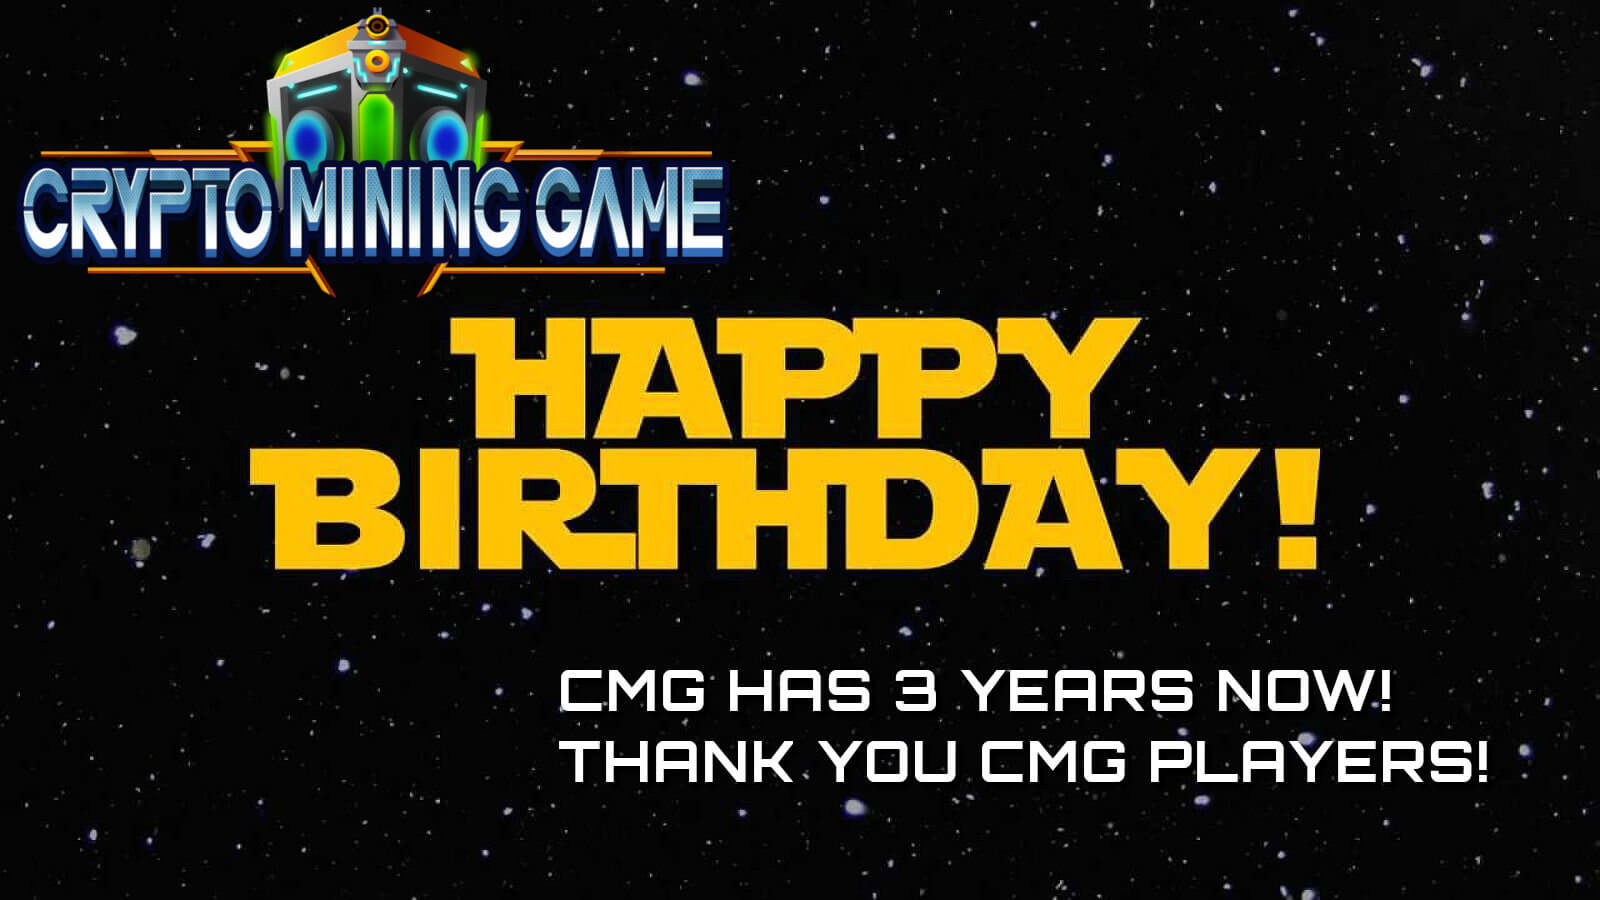 Happy Birthday CMG! 3 Years, Wow! Thank you CMG players!